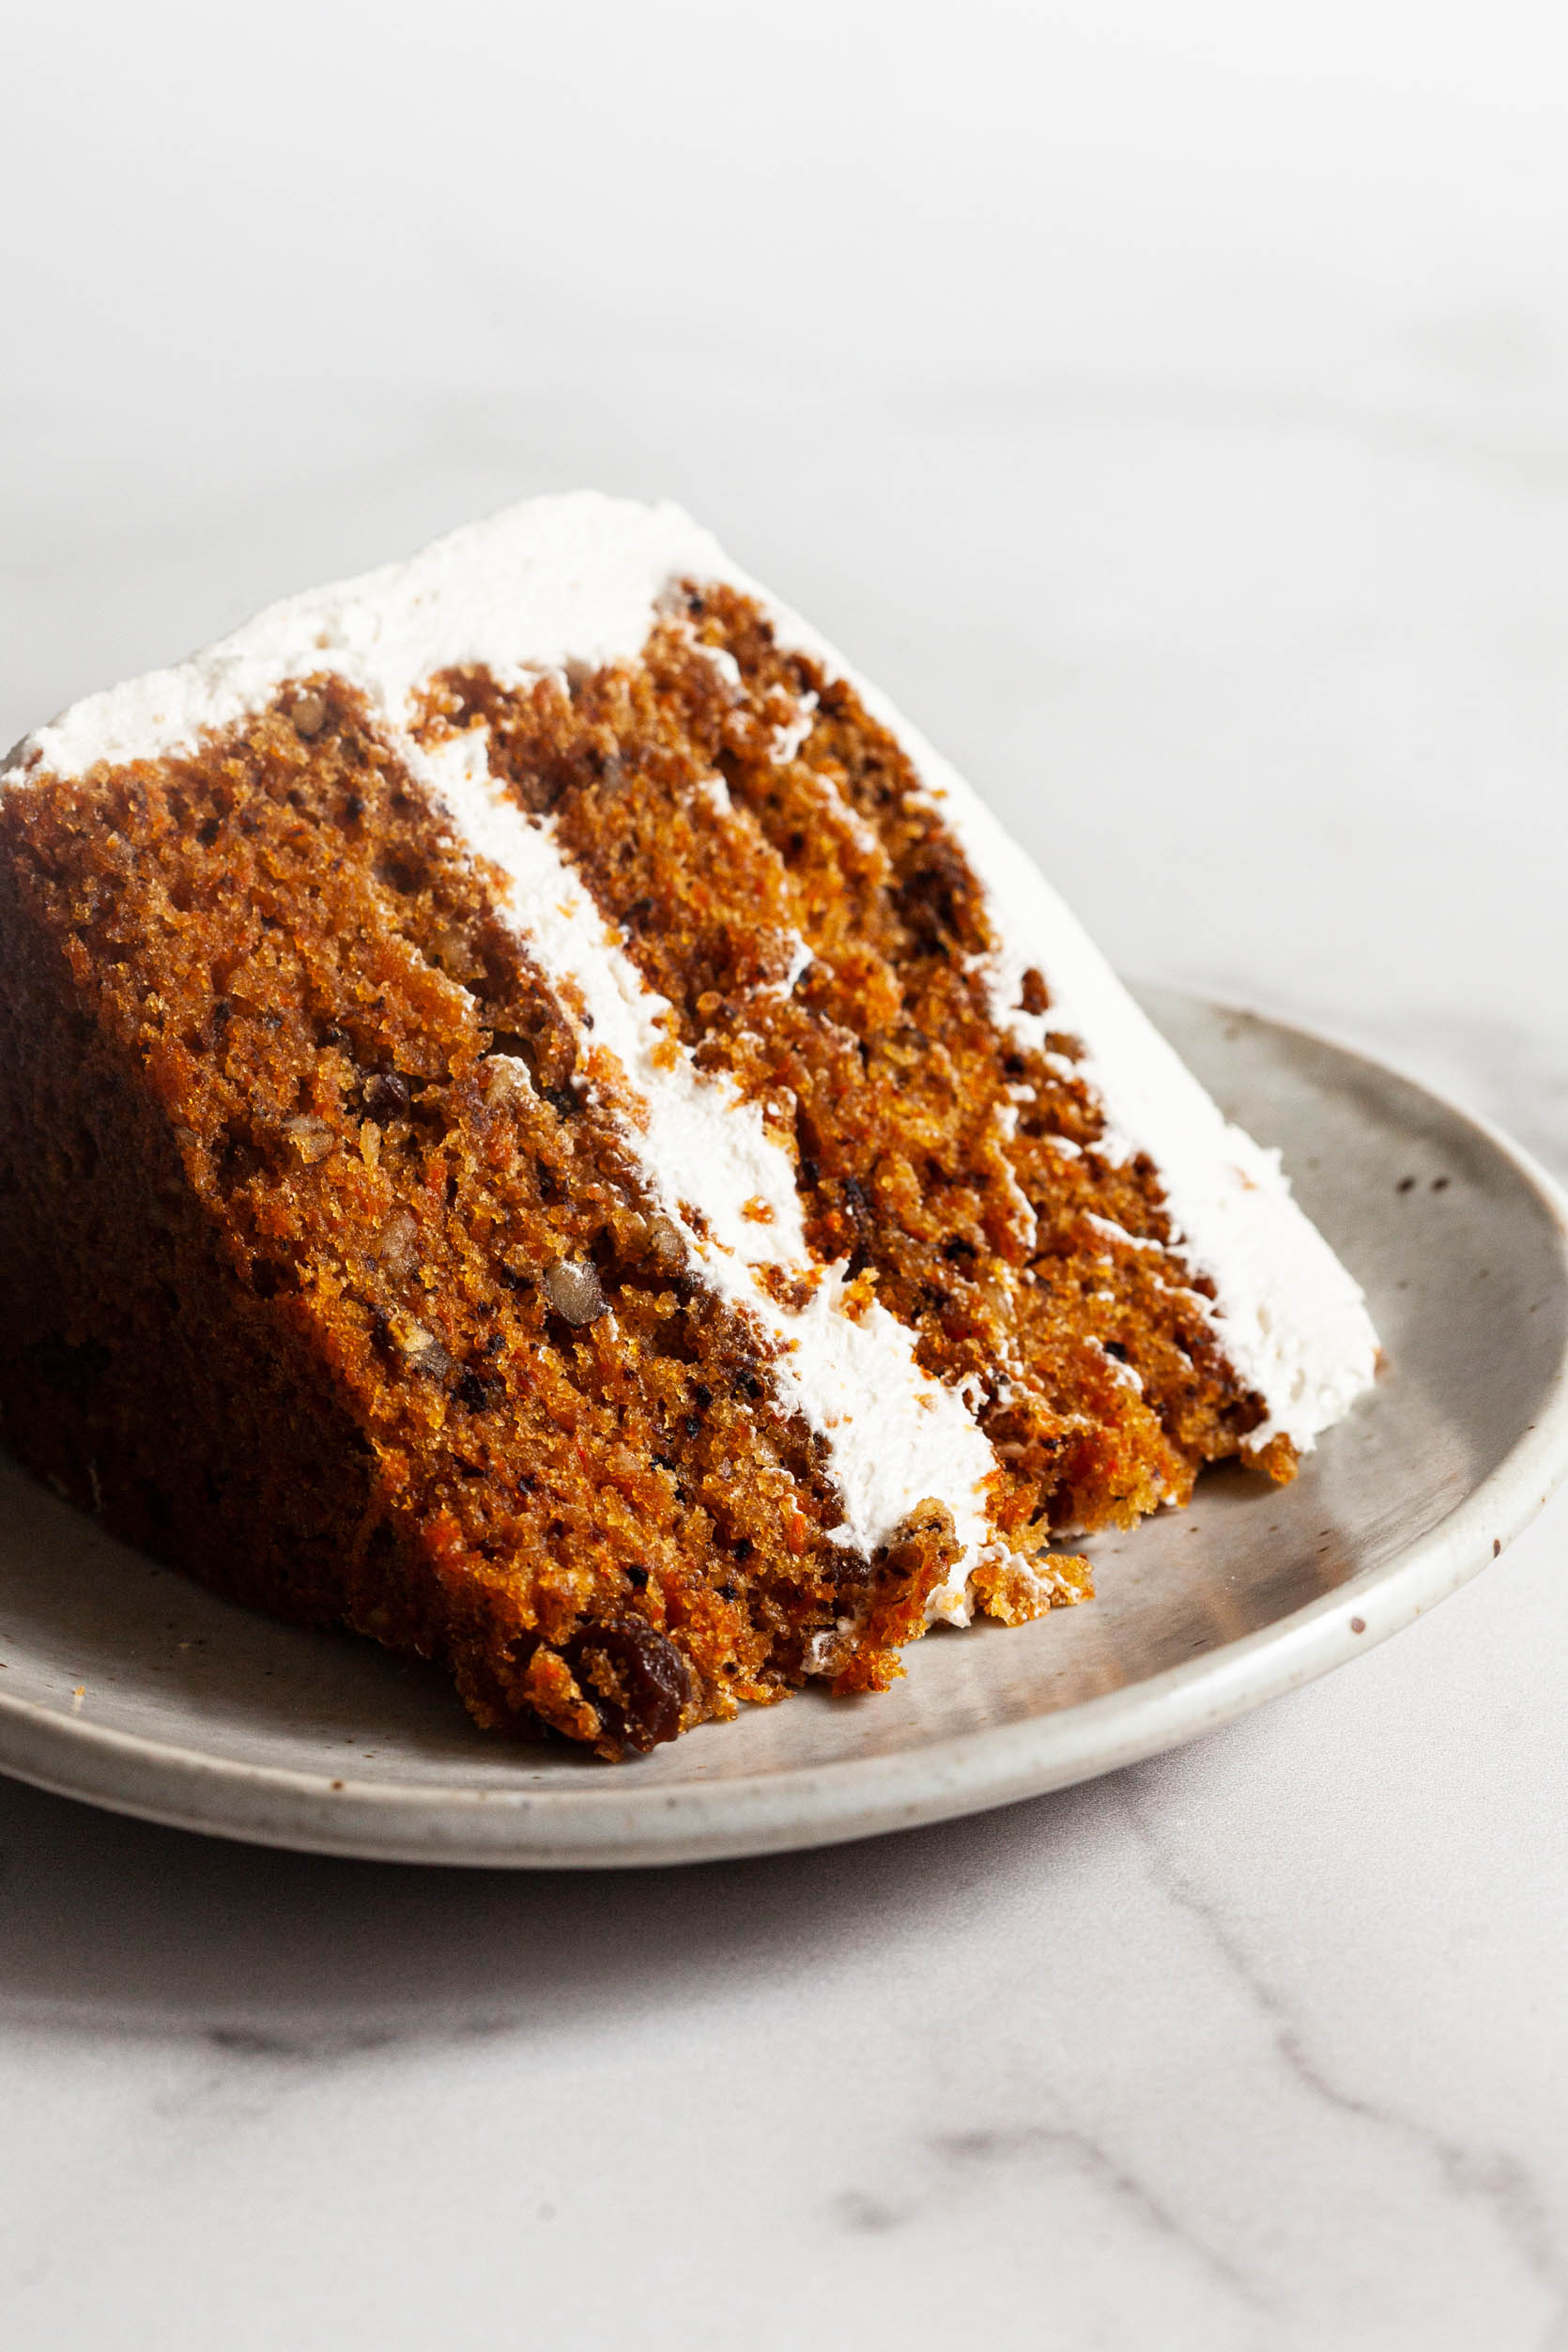 My Favorite Vegan Carrot Cake with Cream Cheese Frosting